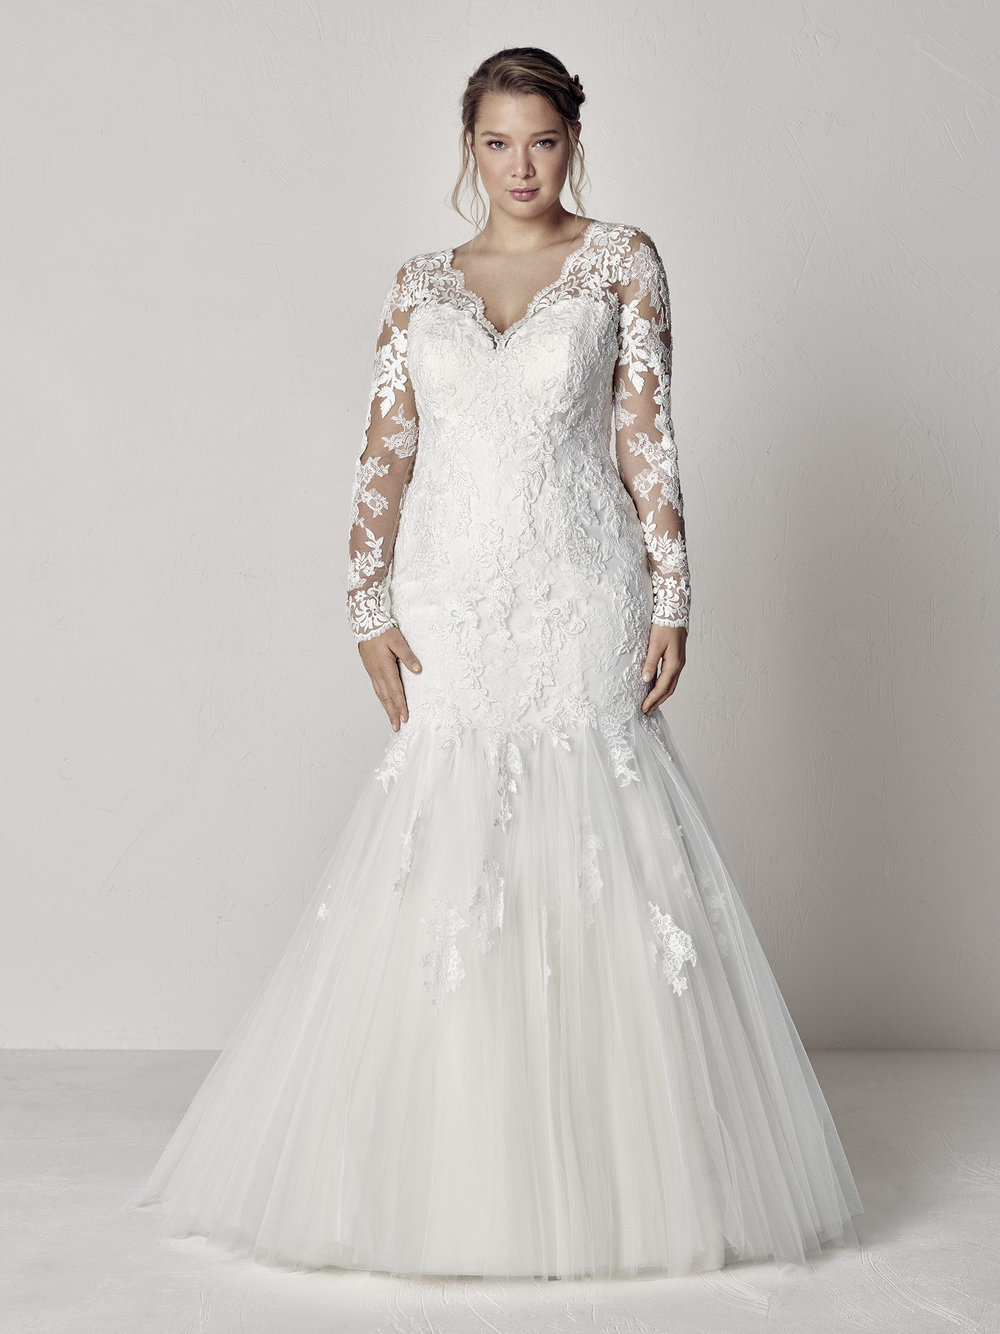 PronoviasBridal-BridesbyYoung-PlusSizeWeddingDress-Evette.jpg